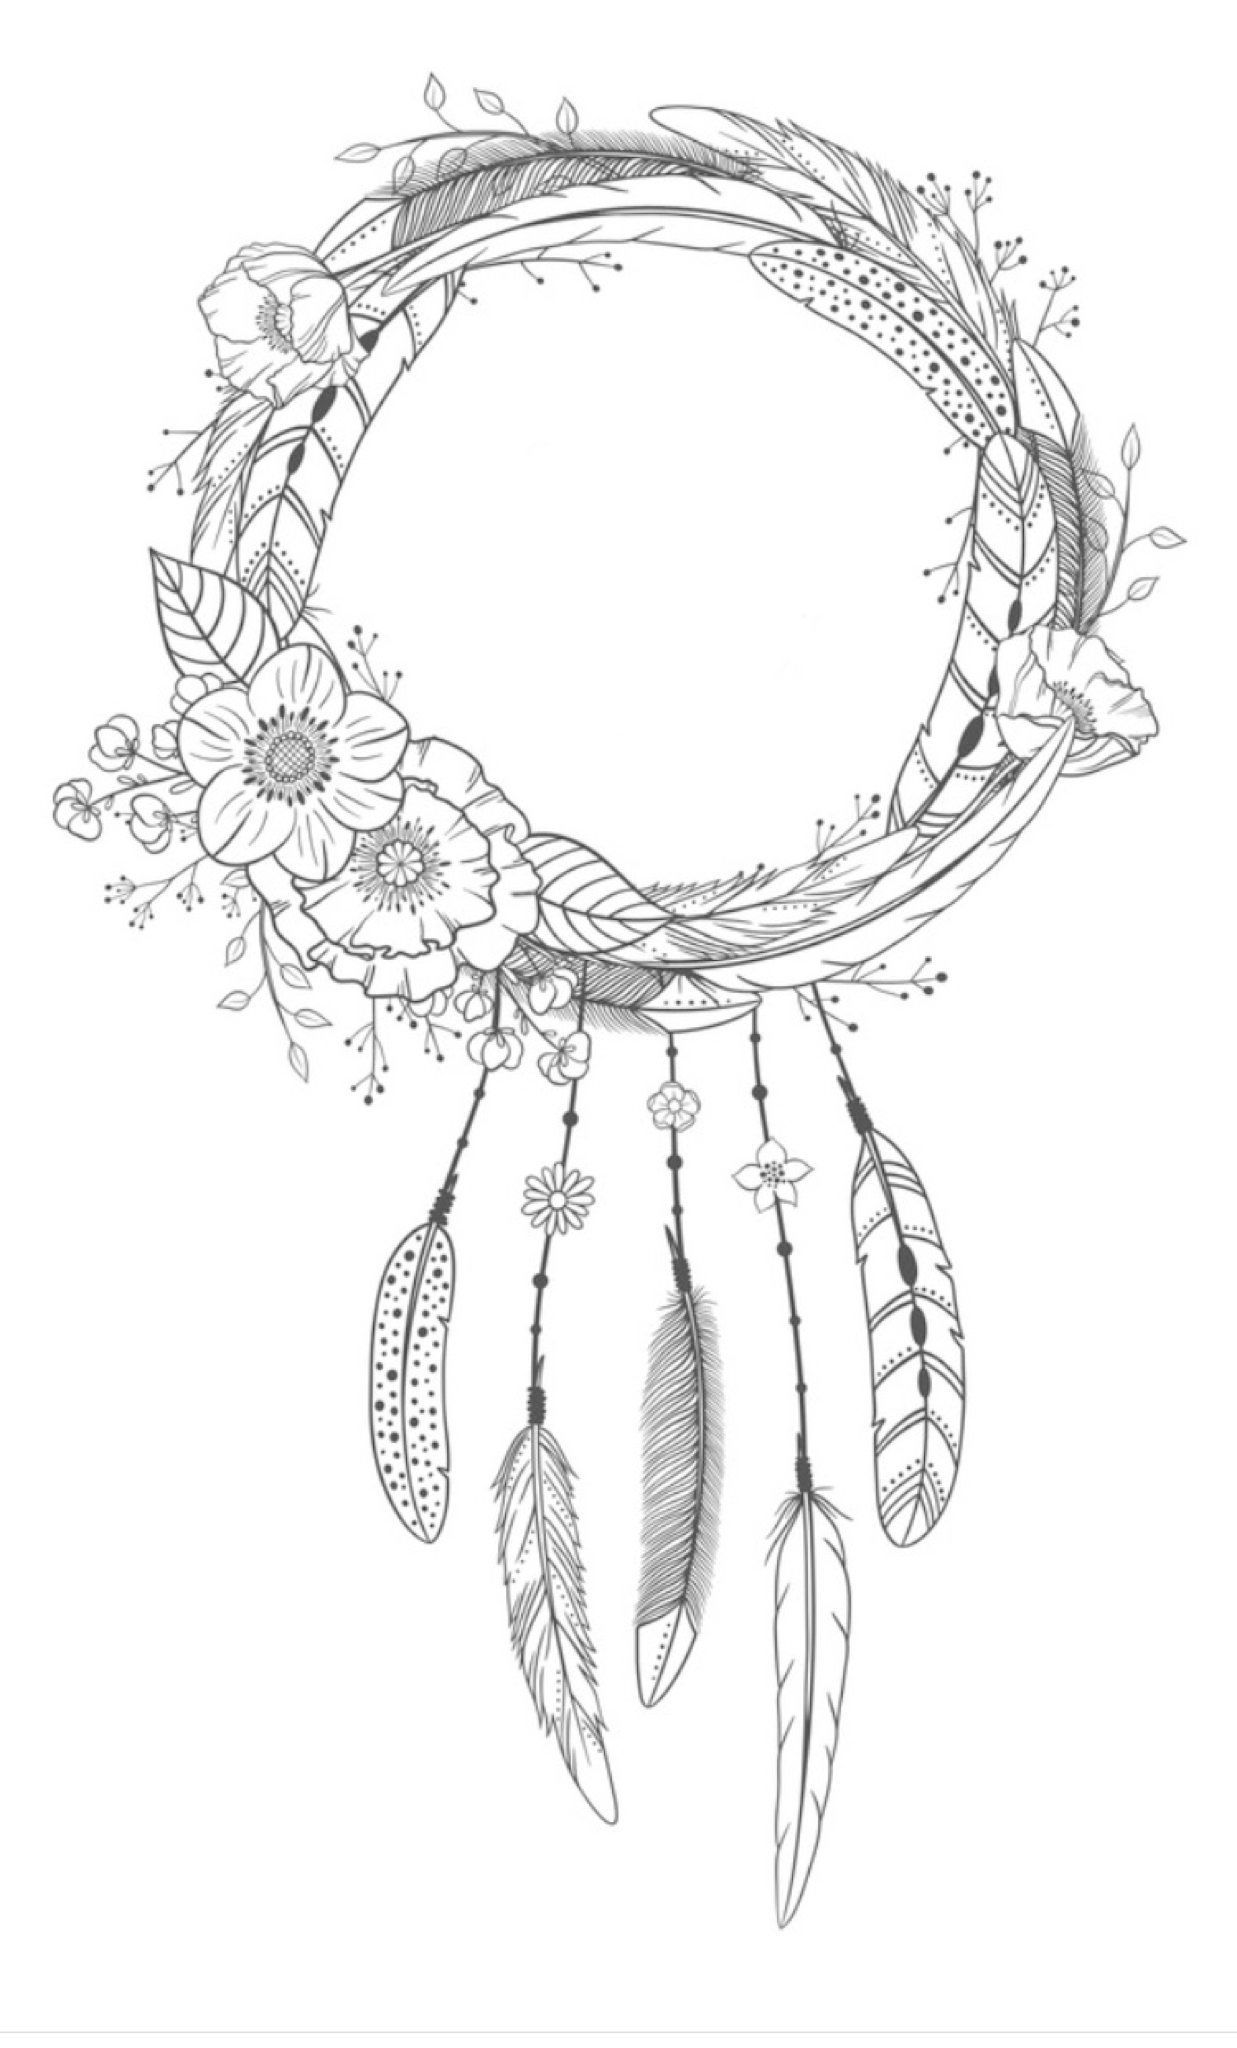 Arts And Crafts For Adults With Dementia Till Crafting Hundings Rage Dream Catcher Coloring Pages Book Clip Art Coloring Pages